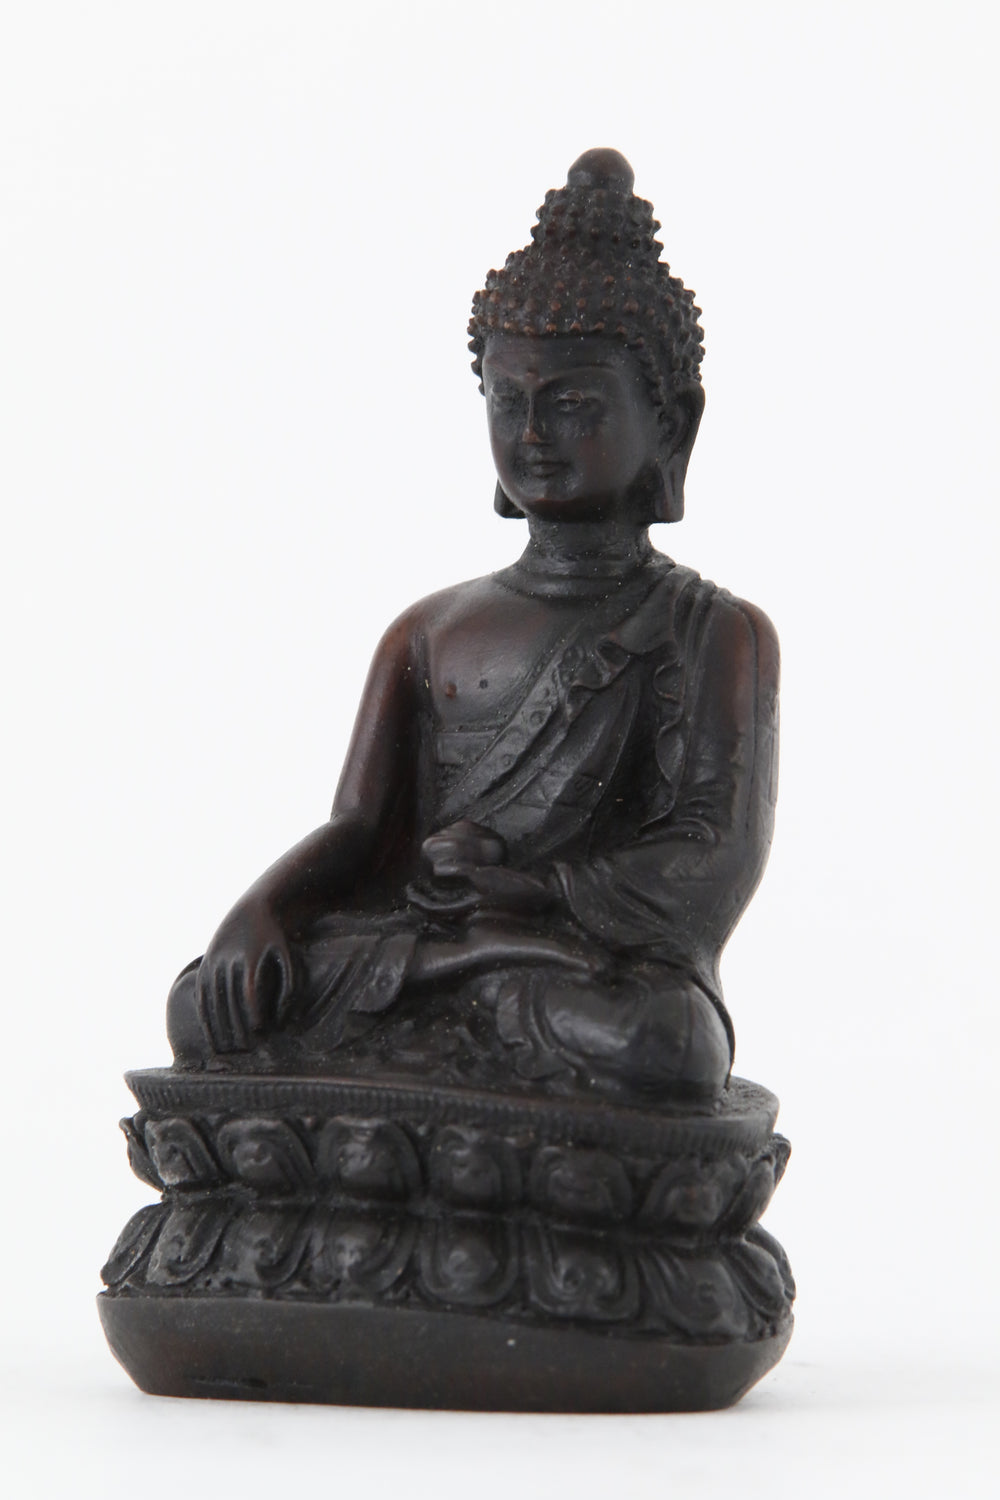 EARTH TOUCHING BUDDHA STATUE DARK SMALL SIDE VIEW